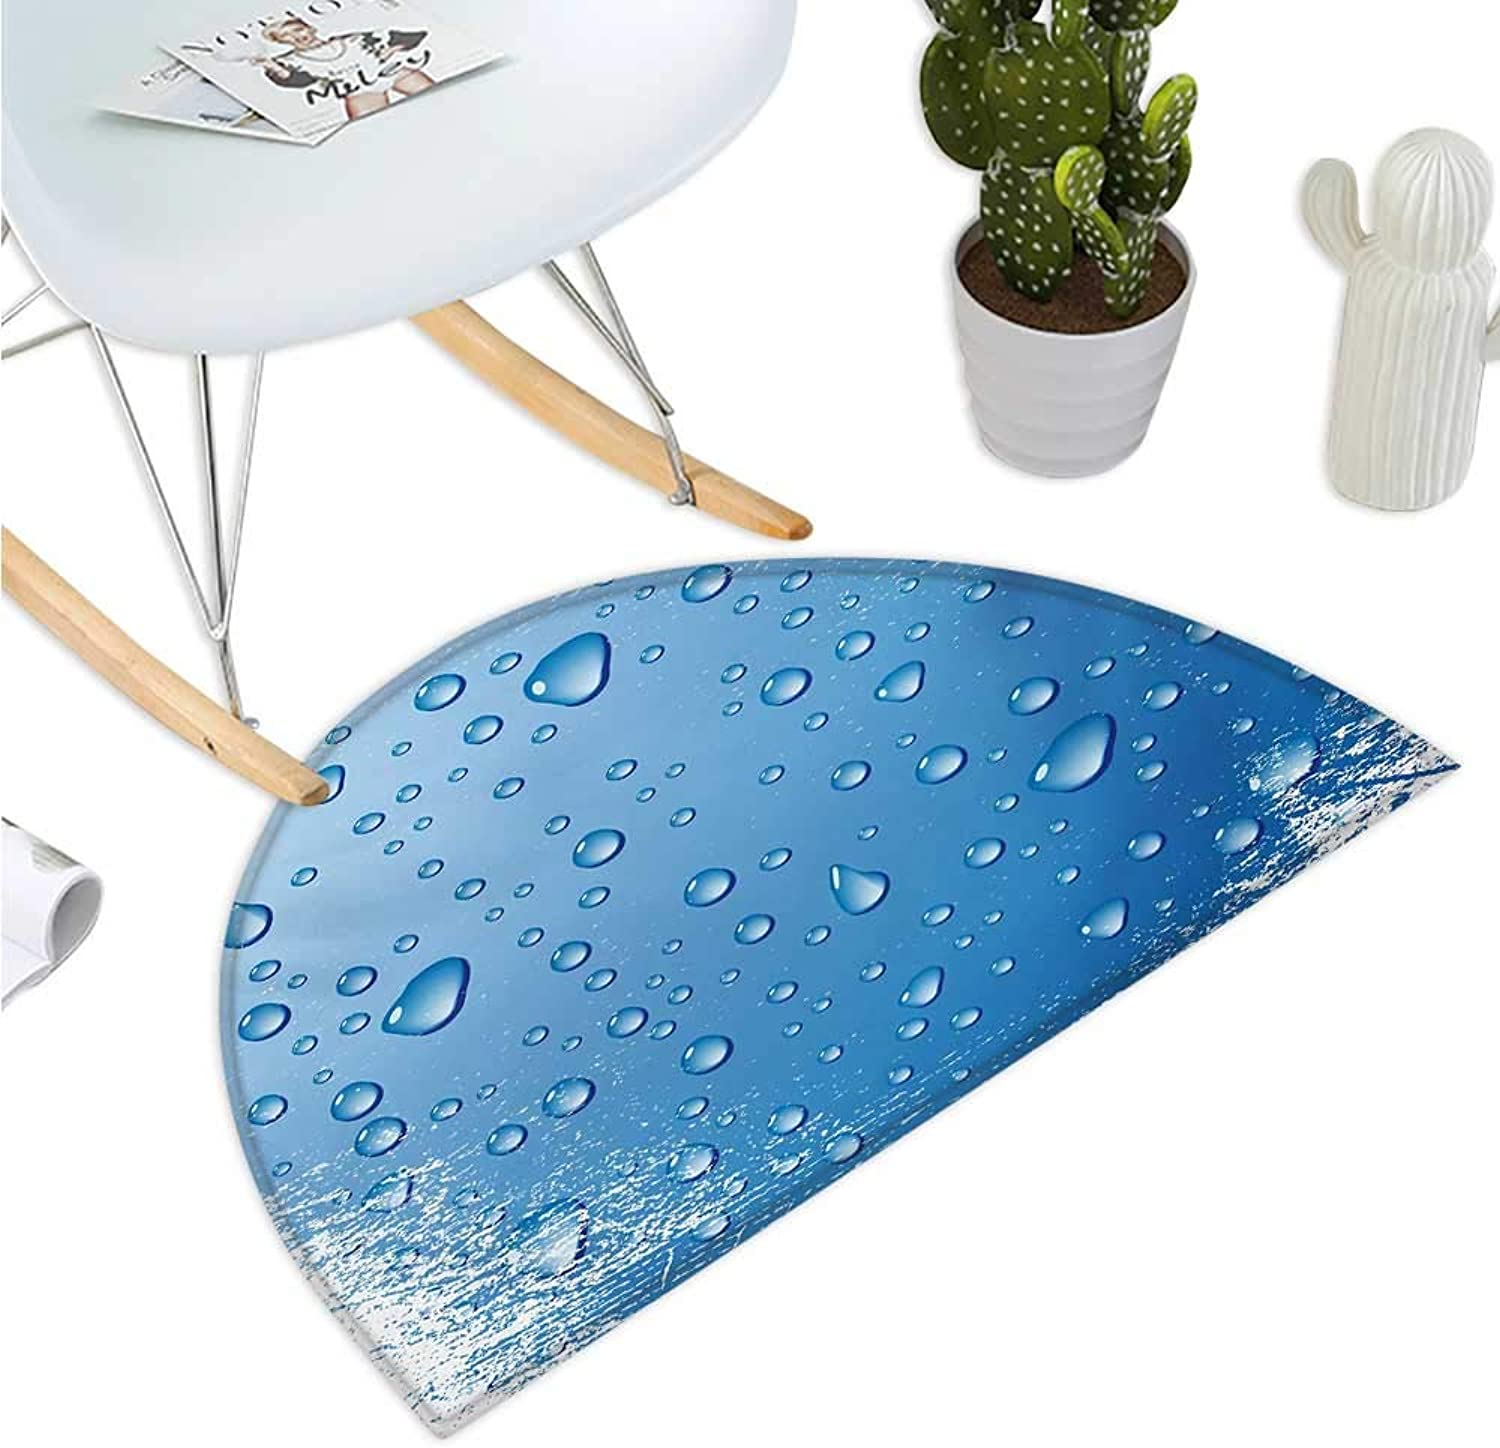 Grunge Semicircle Doormat Realistic Water Drops Bubbles on Worn Scratched Looking Backdrop Freshness Purity Halfmoon doormats H 35.4  xD 53.1  bluee White